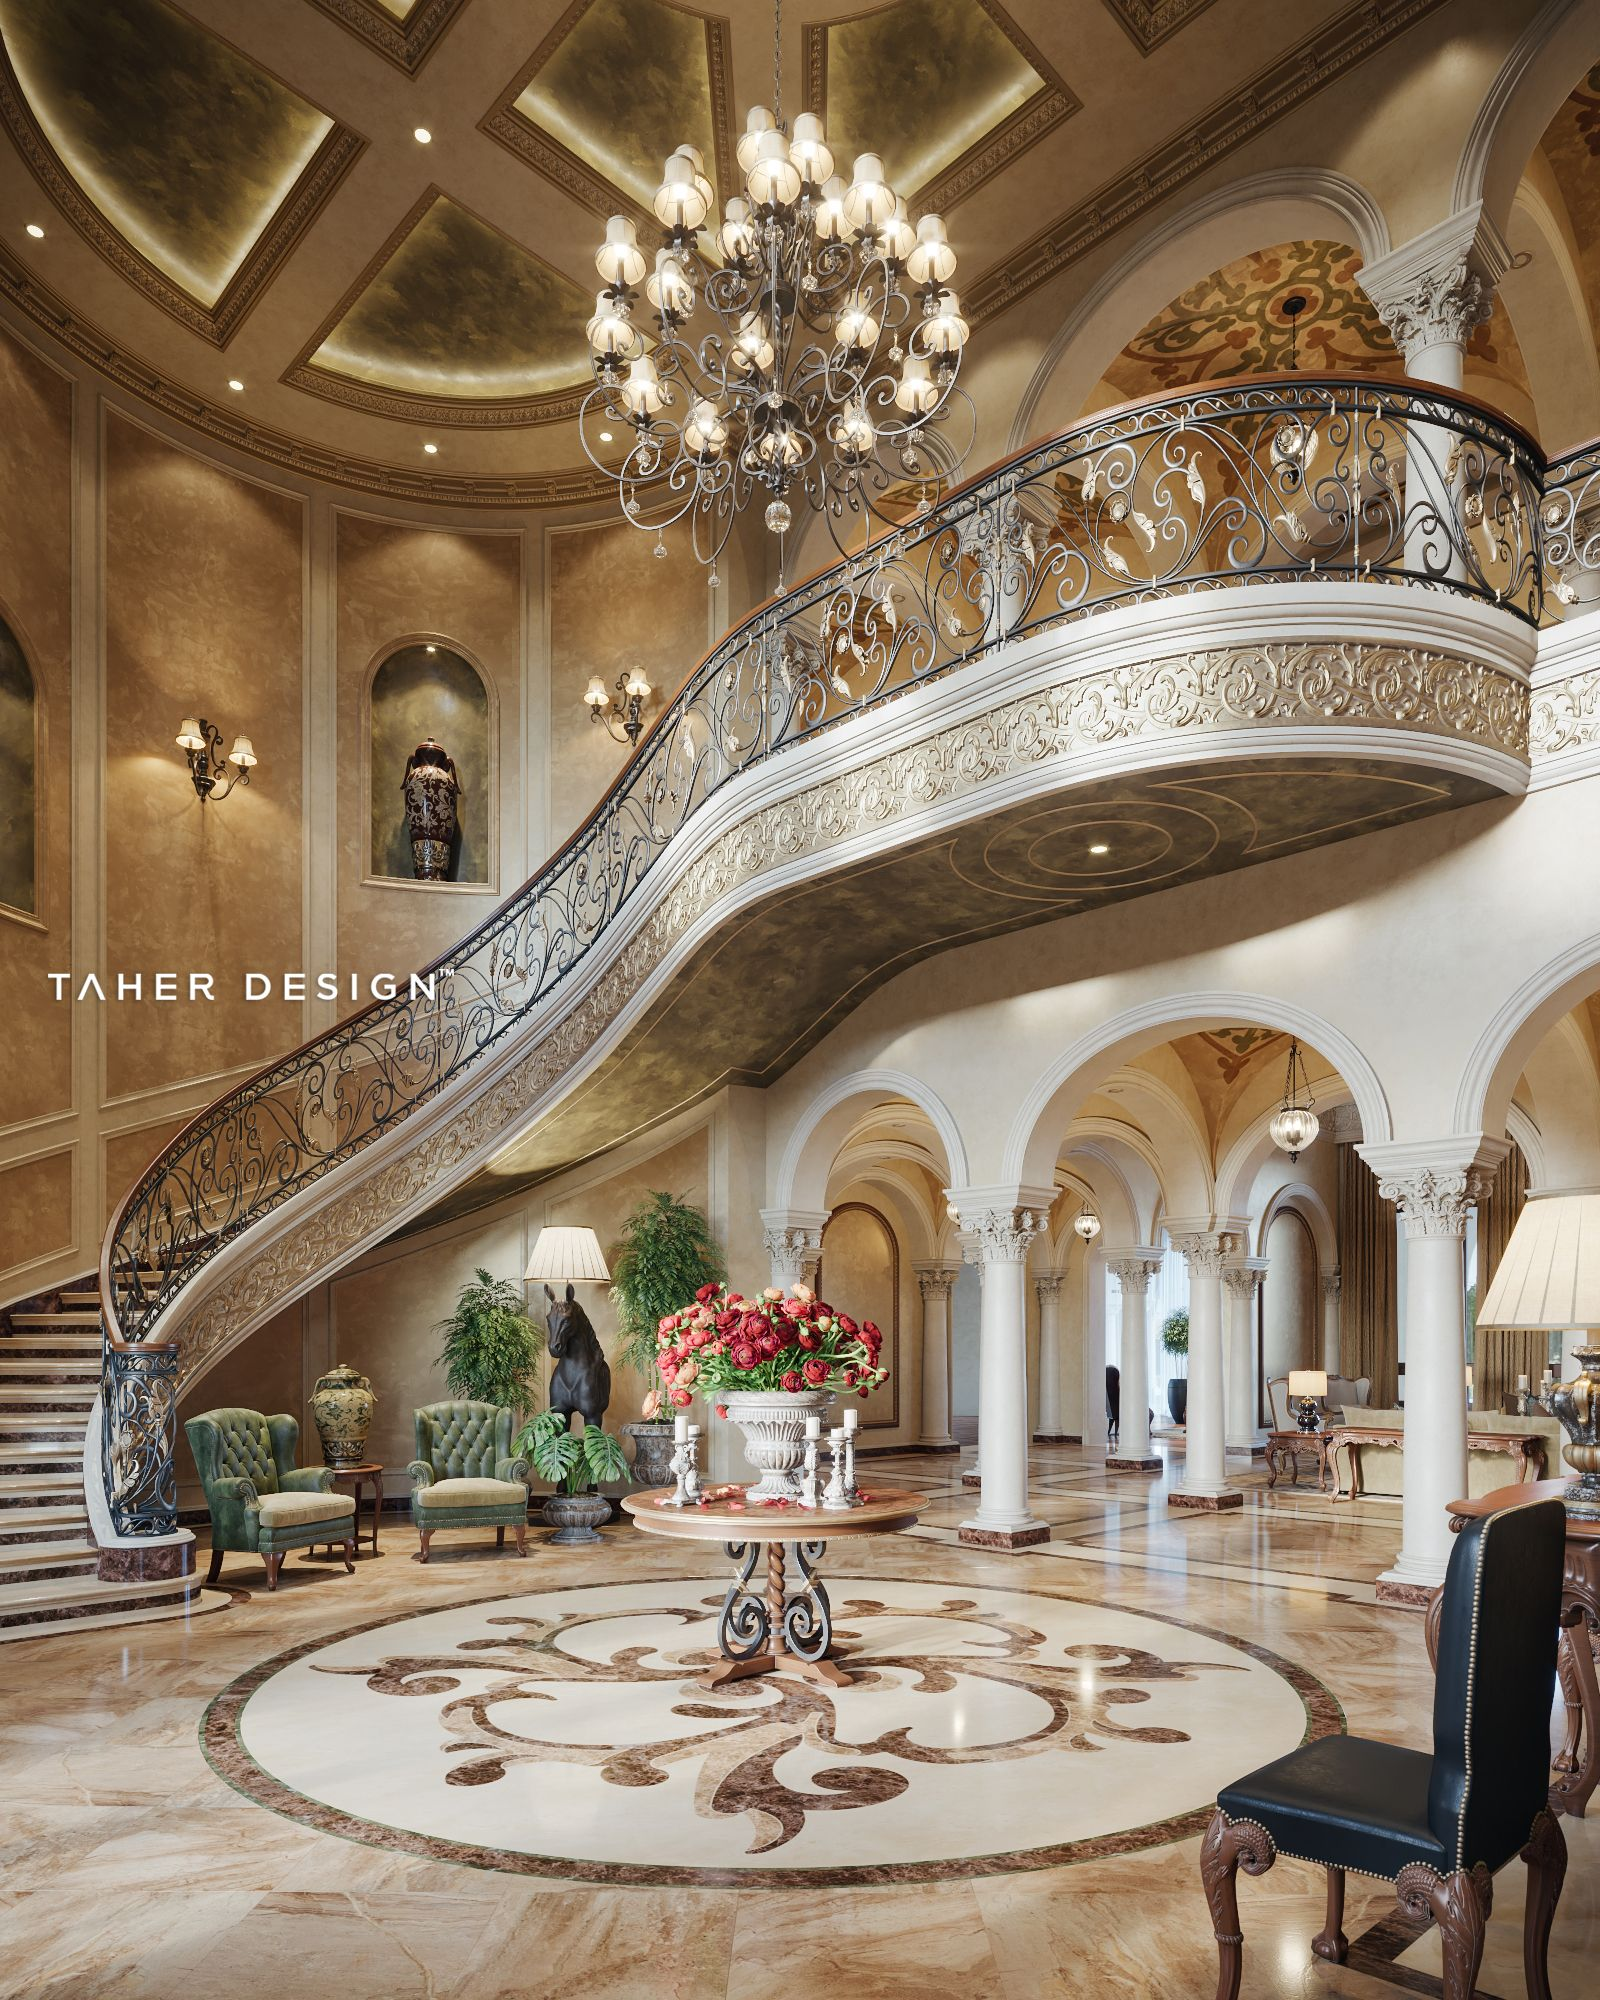 Luxury Homes Interior Design Photos: Grand Foyer Design For Luxury Mansion Located In (Dubai